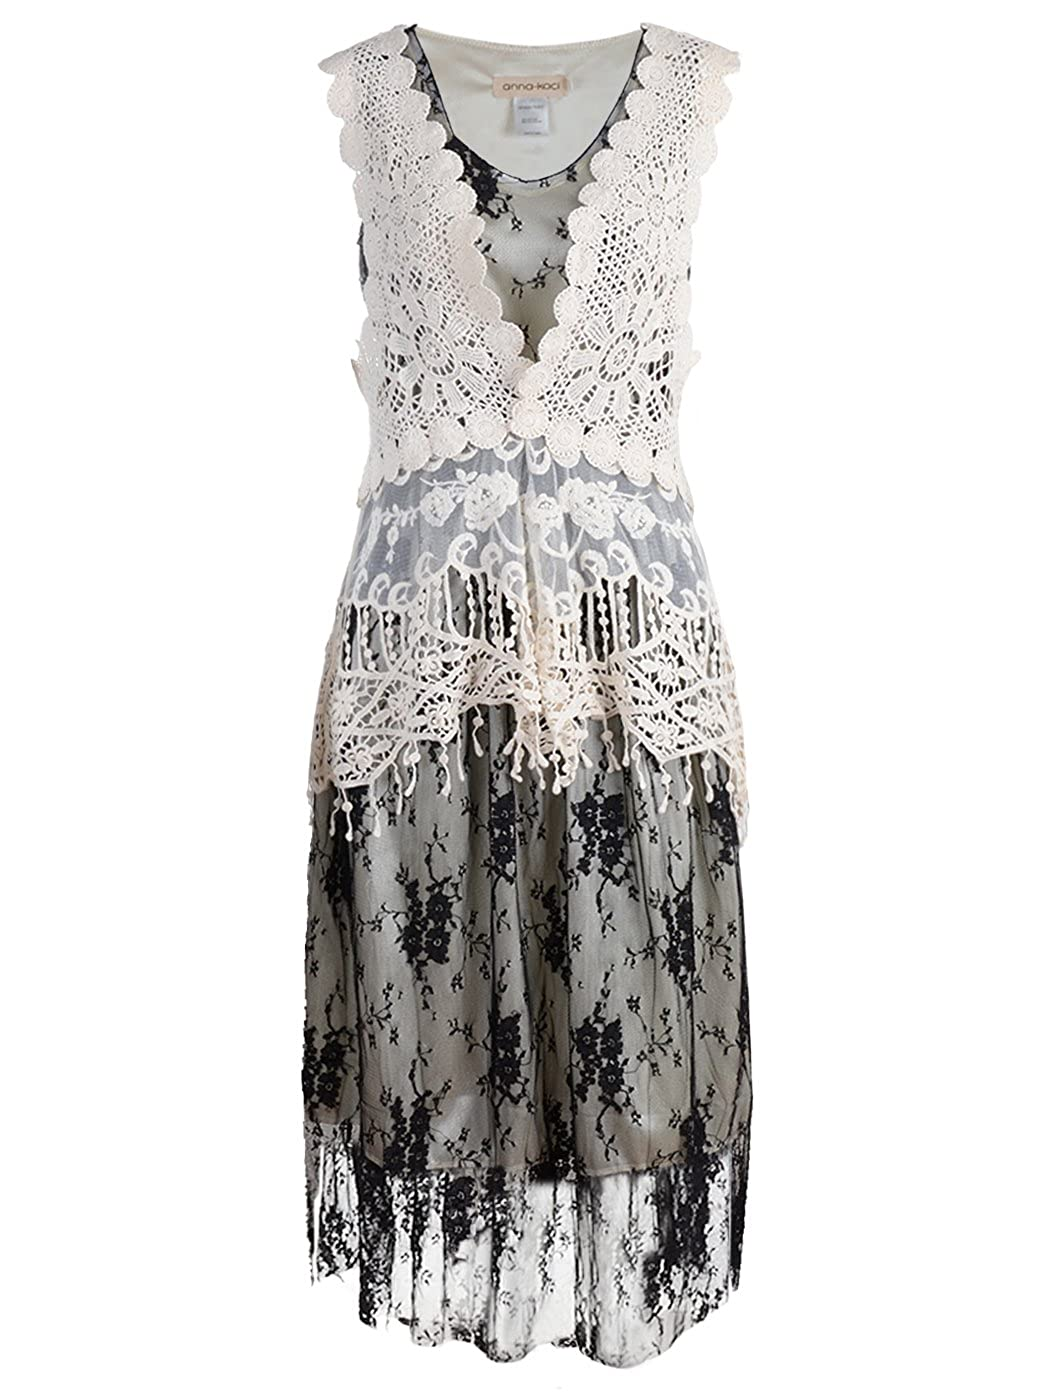 bcc1f438fc0e Anna-Kaci Womens Vintage Lace Gatsby 1920s Cocktail Dress with Crochet Vest  at Amazon Women's Clothing store: